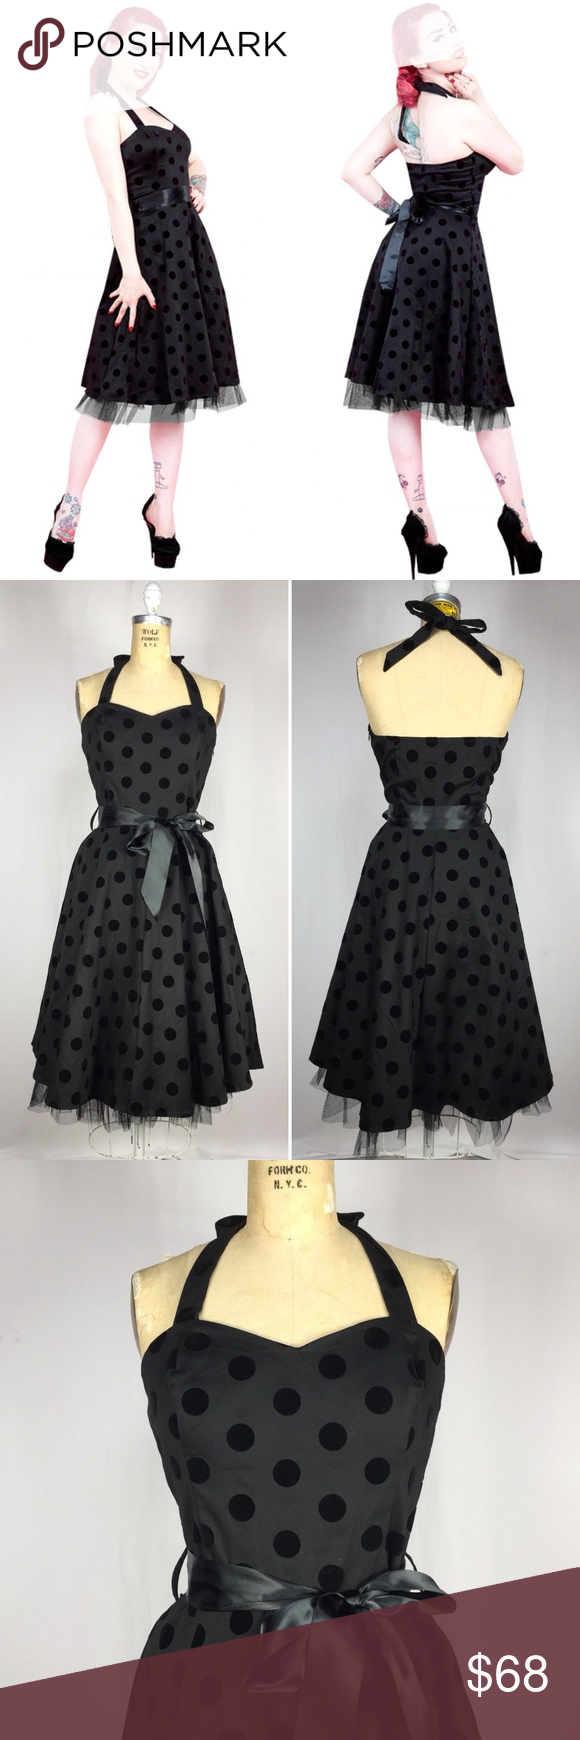 Flocked velvet polka dot rockabilly swing dress rockabilly polka